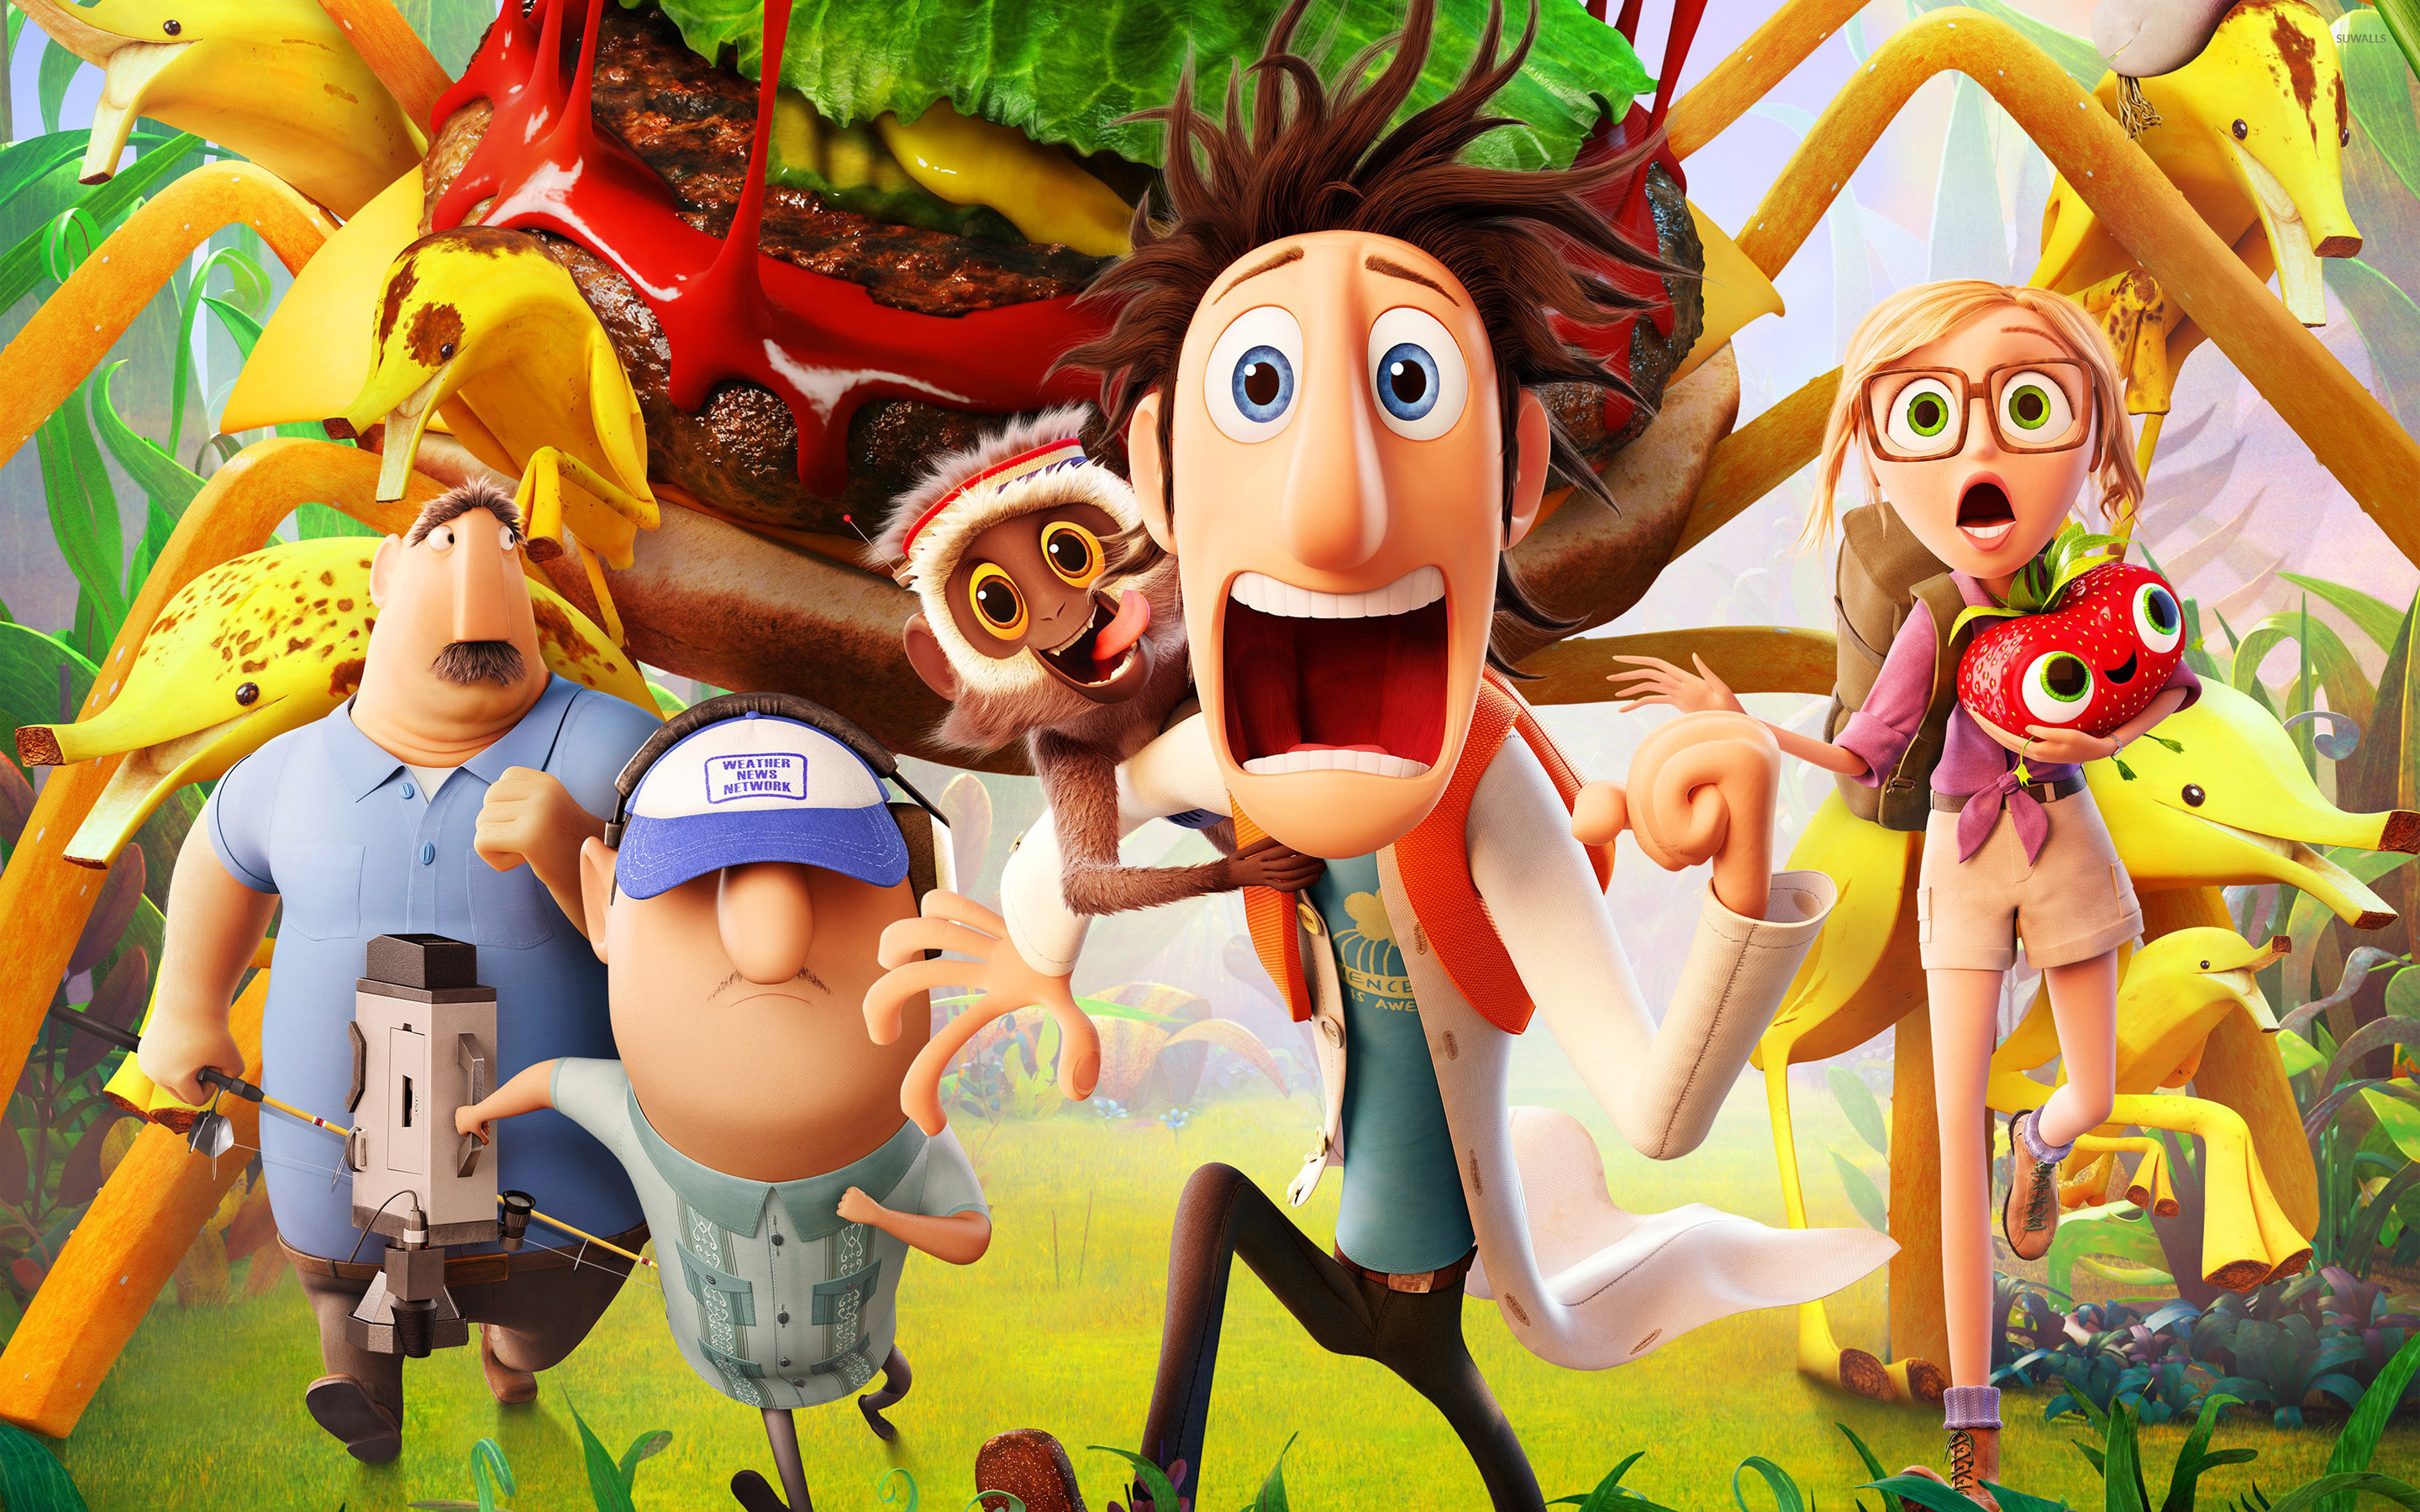 cloudy with a chance of meatballs 2 wallpaper - cartoon wallpapers